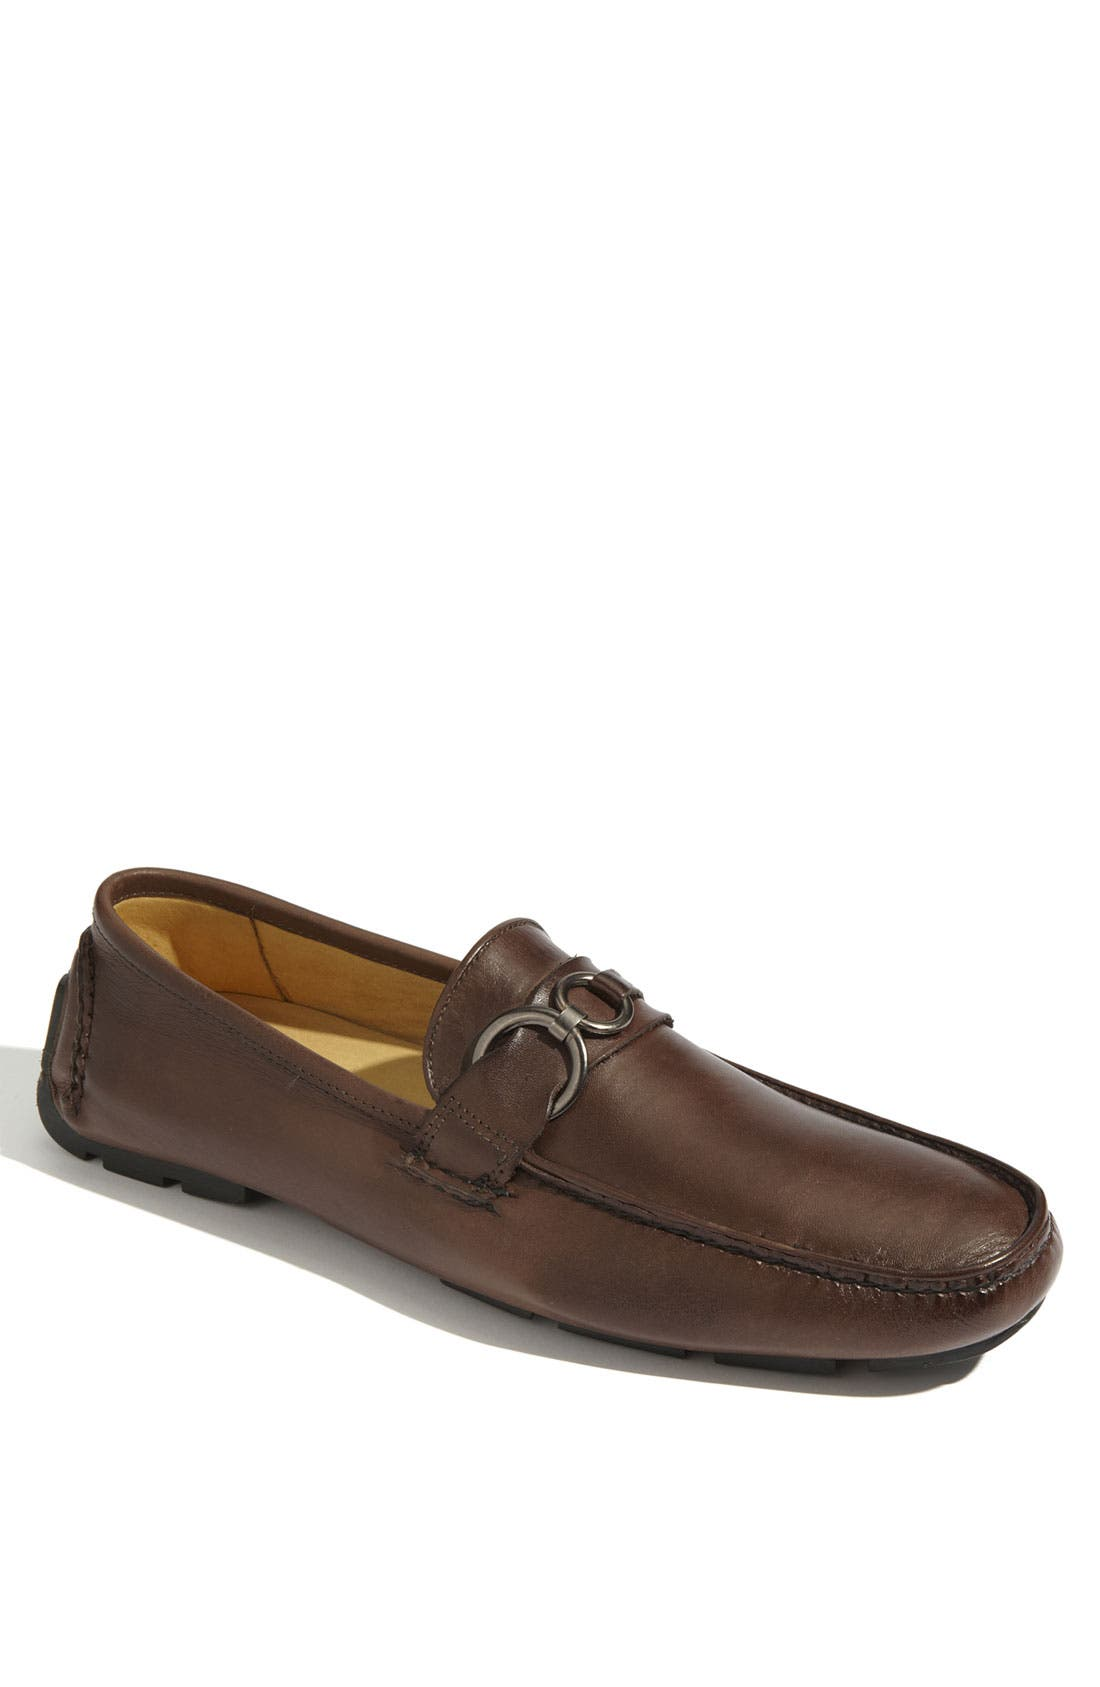 Alternate Image 1 Selected - Bacco Bucci 'Marcelo' Driving Loafer